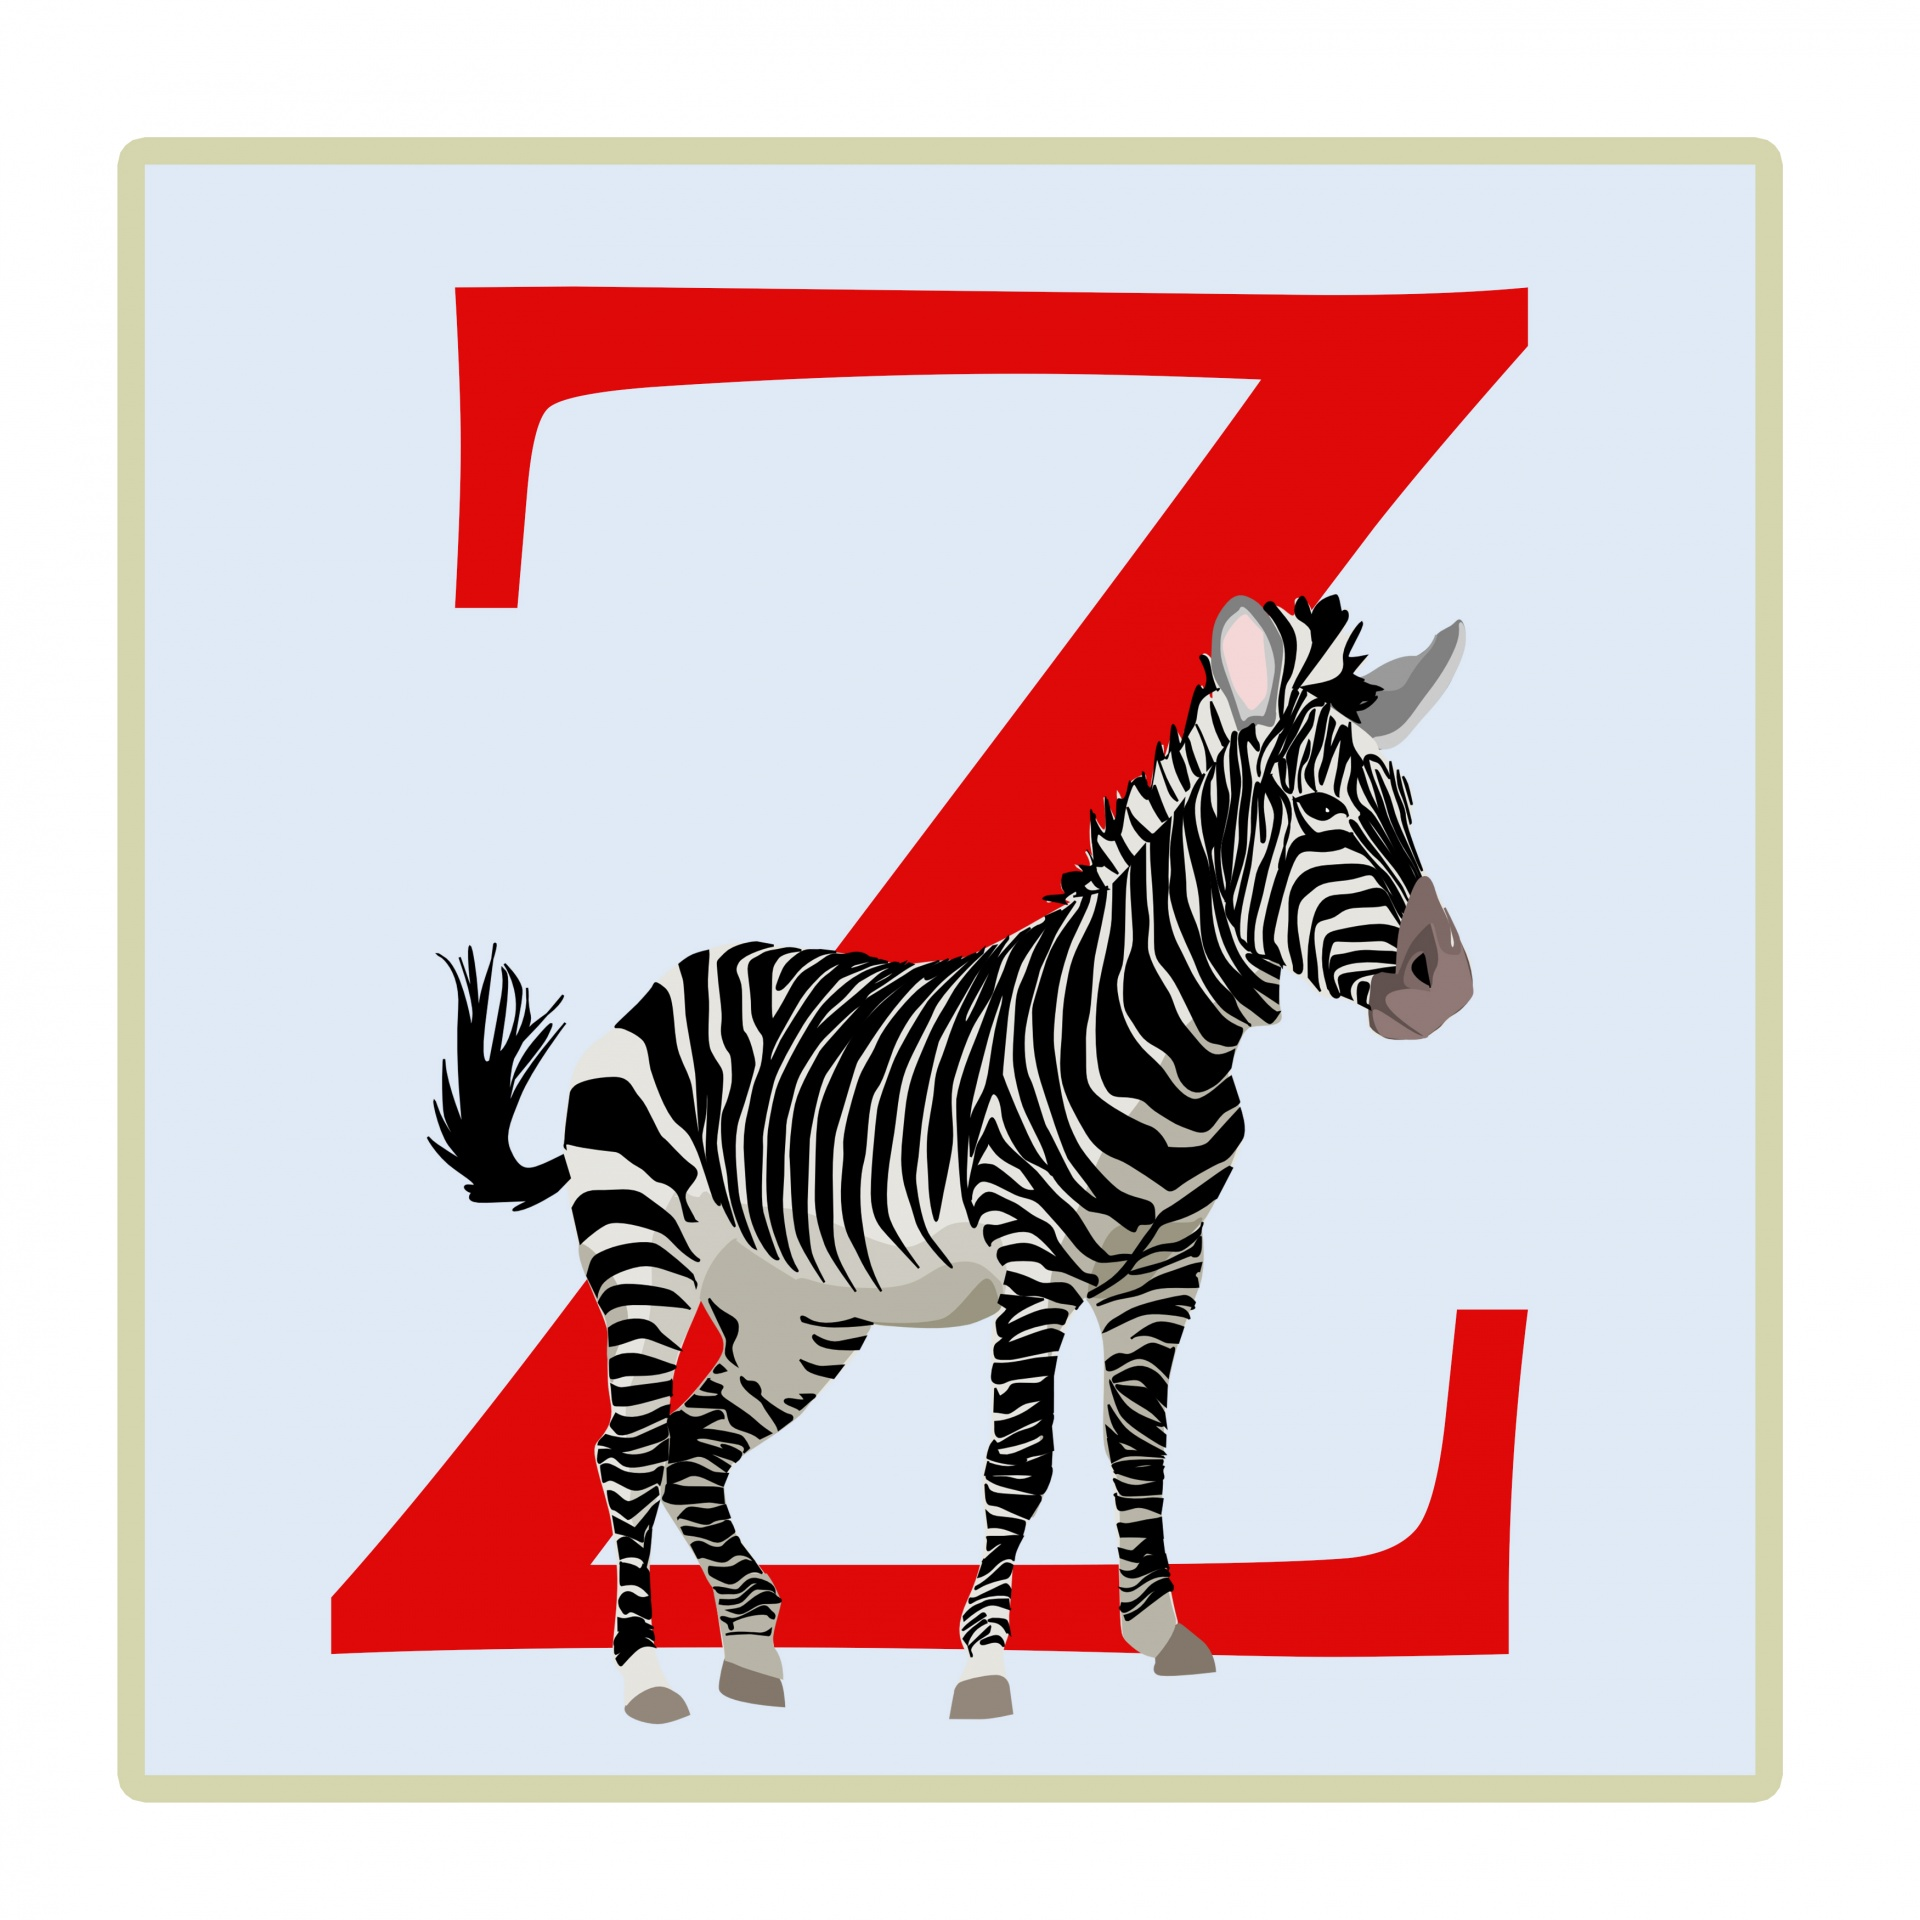 Letter Z Zebra Illustration Free Stock Photo